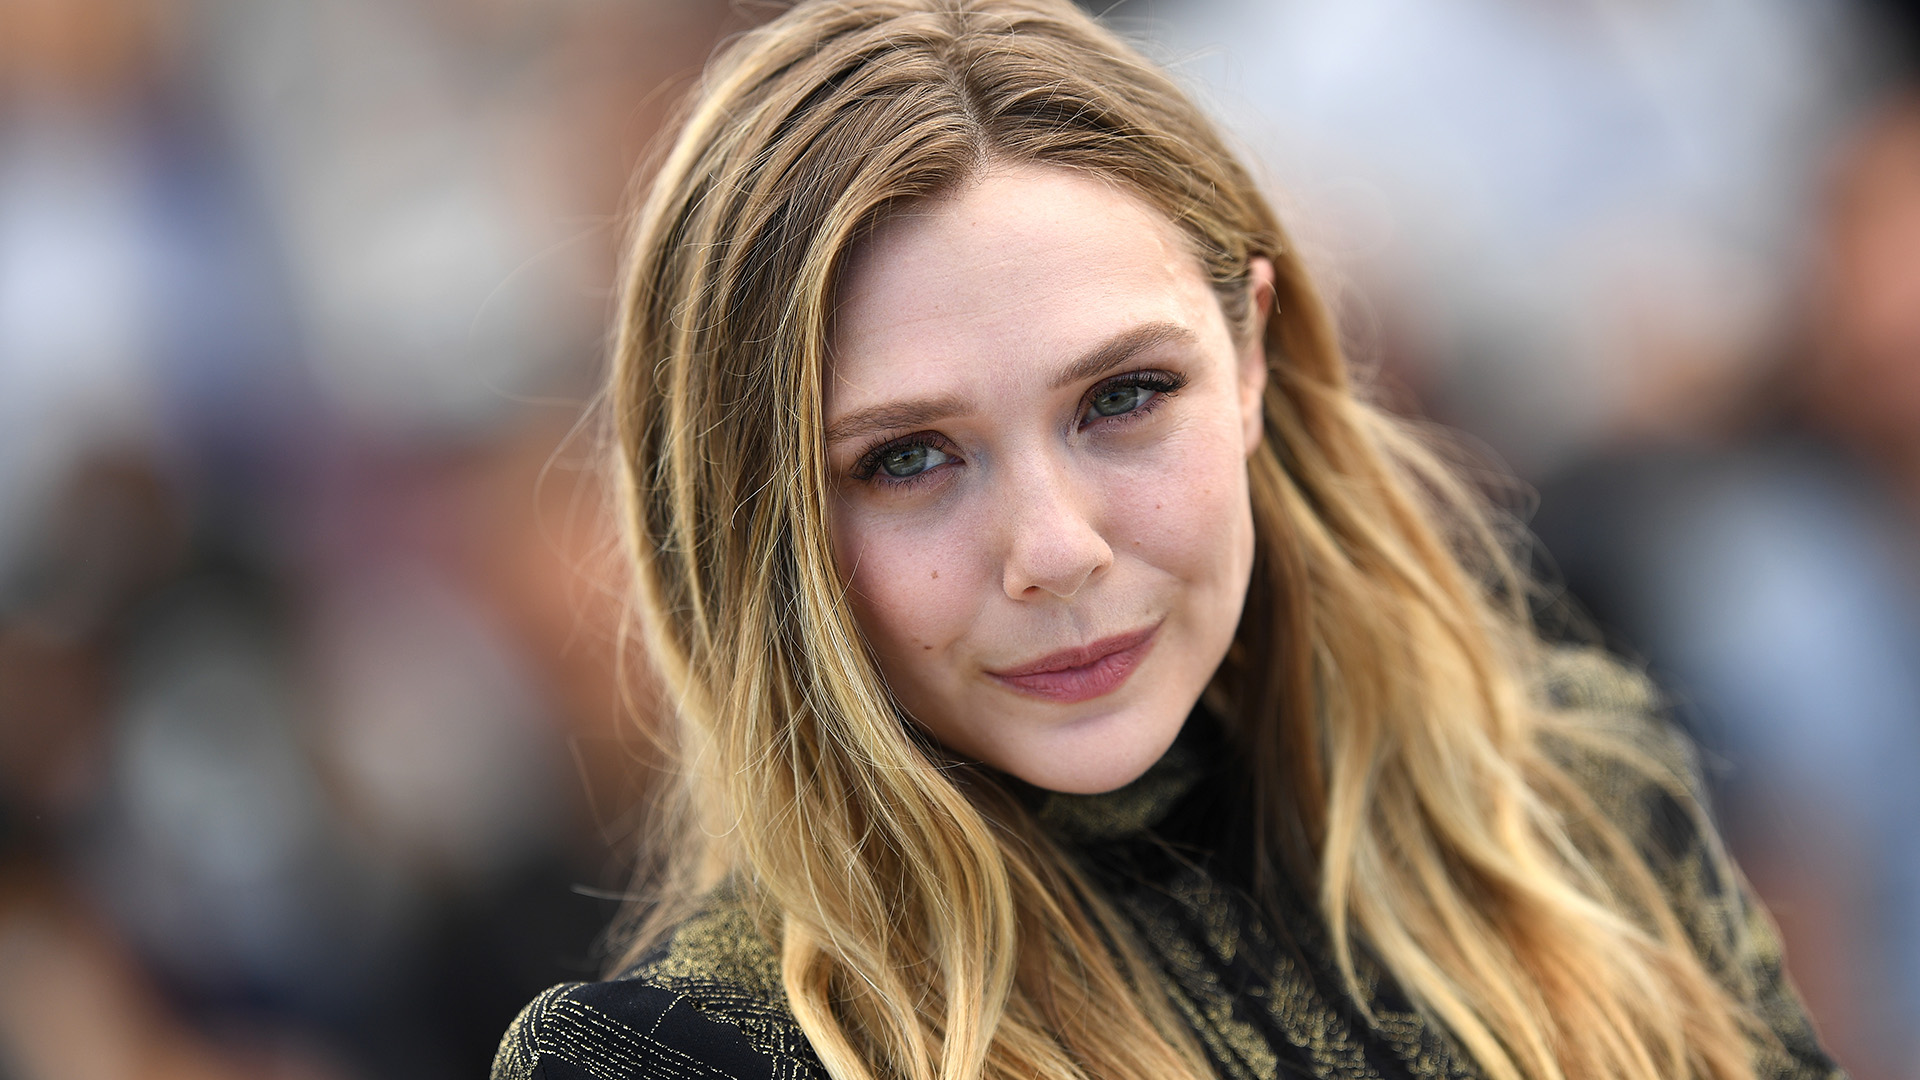 Elizabeth Olsen Called Out a Magazine for Drastically Photoshopping Her Face